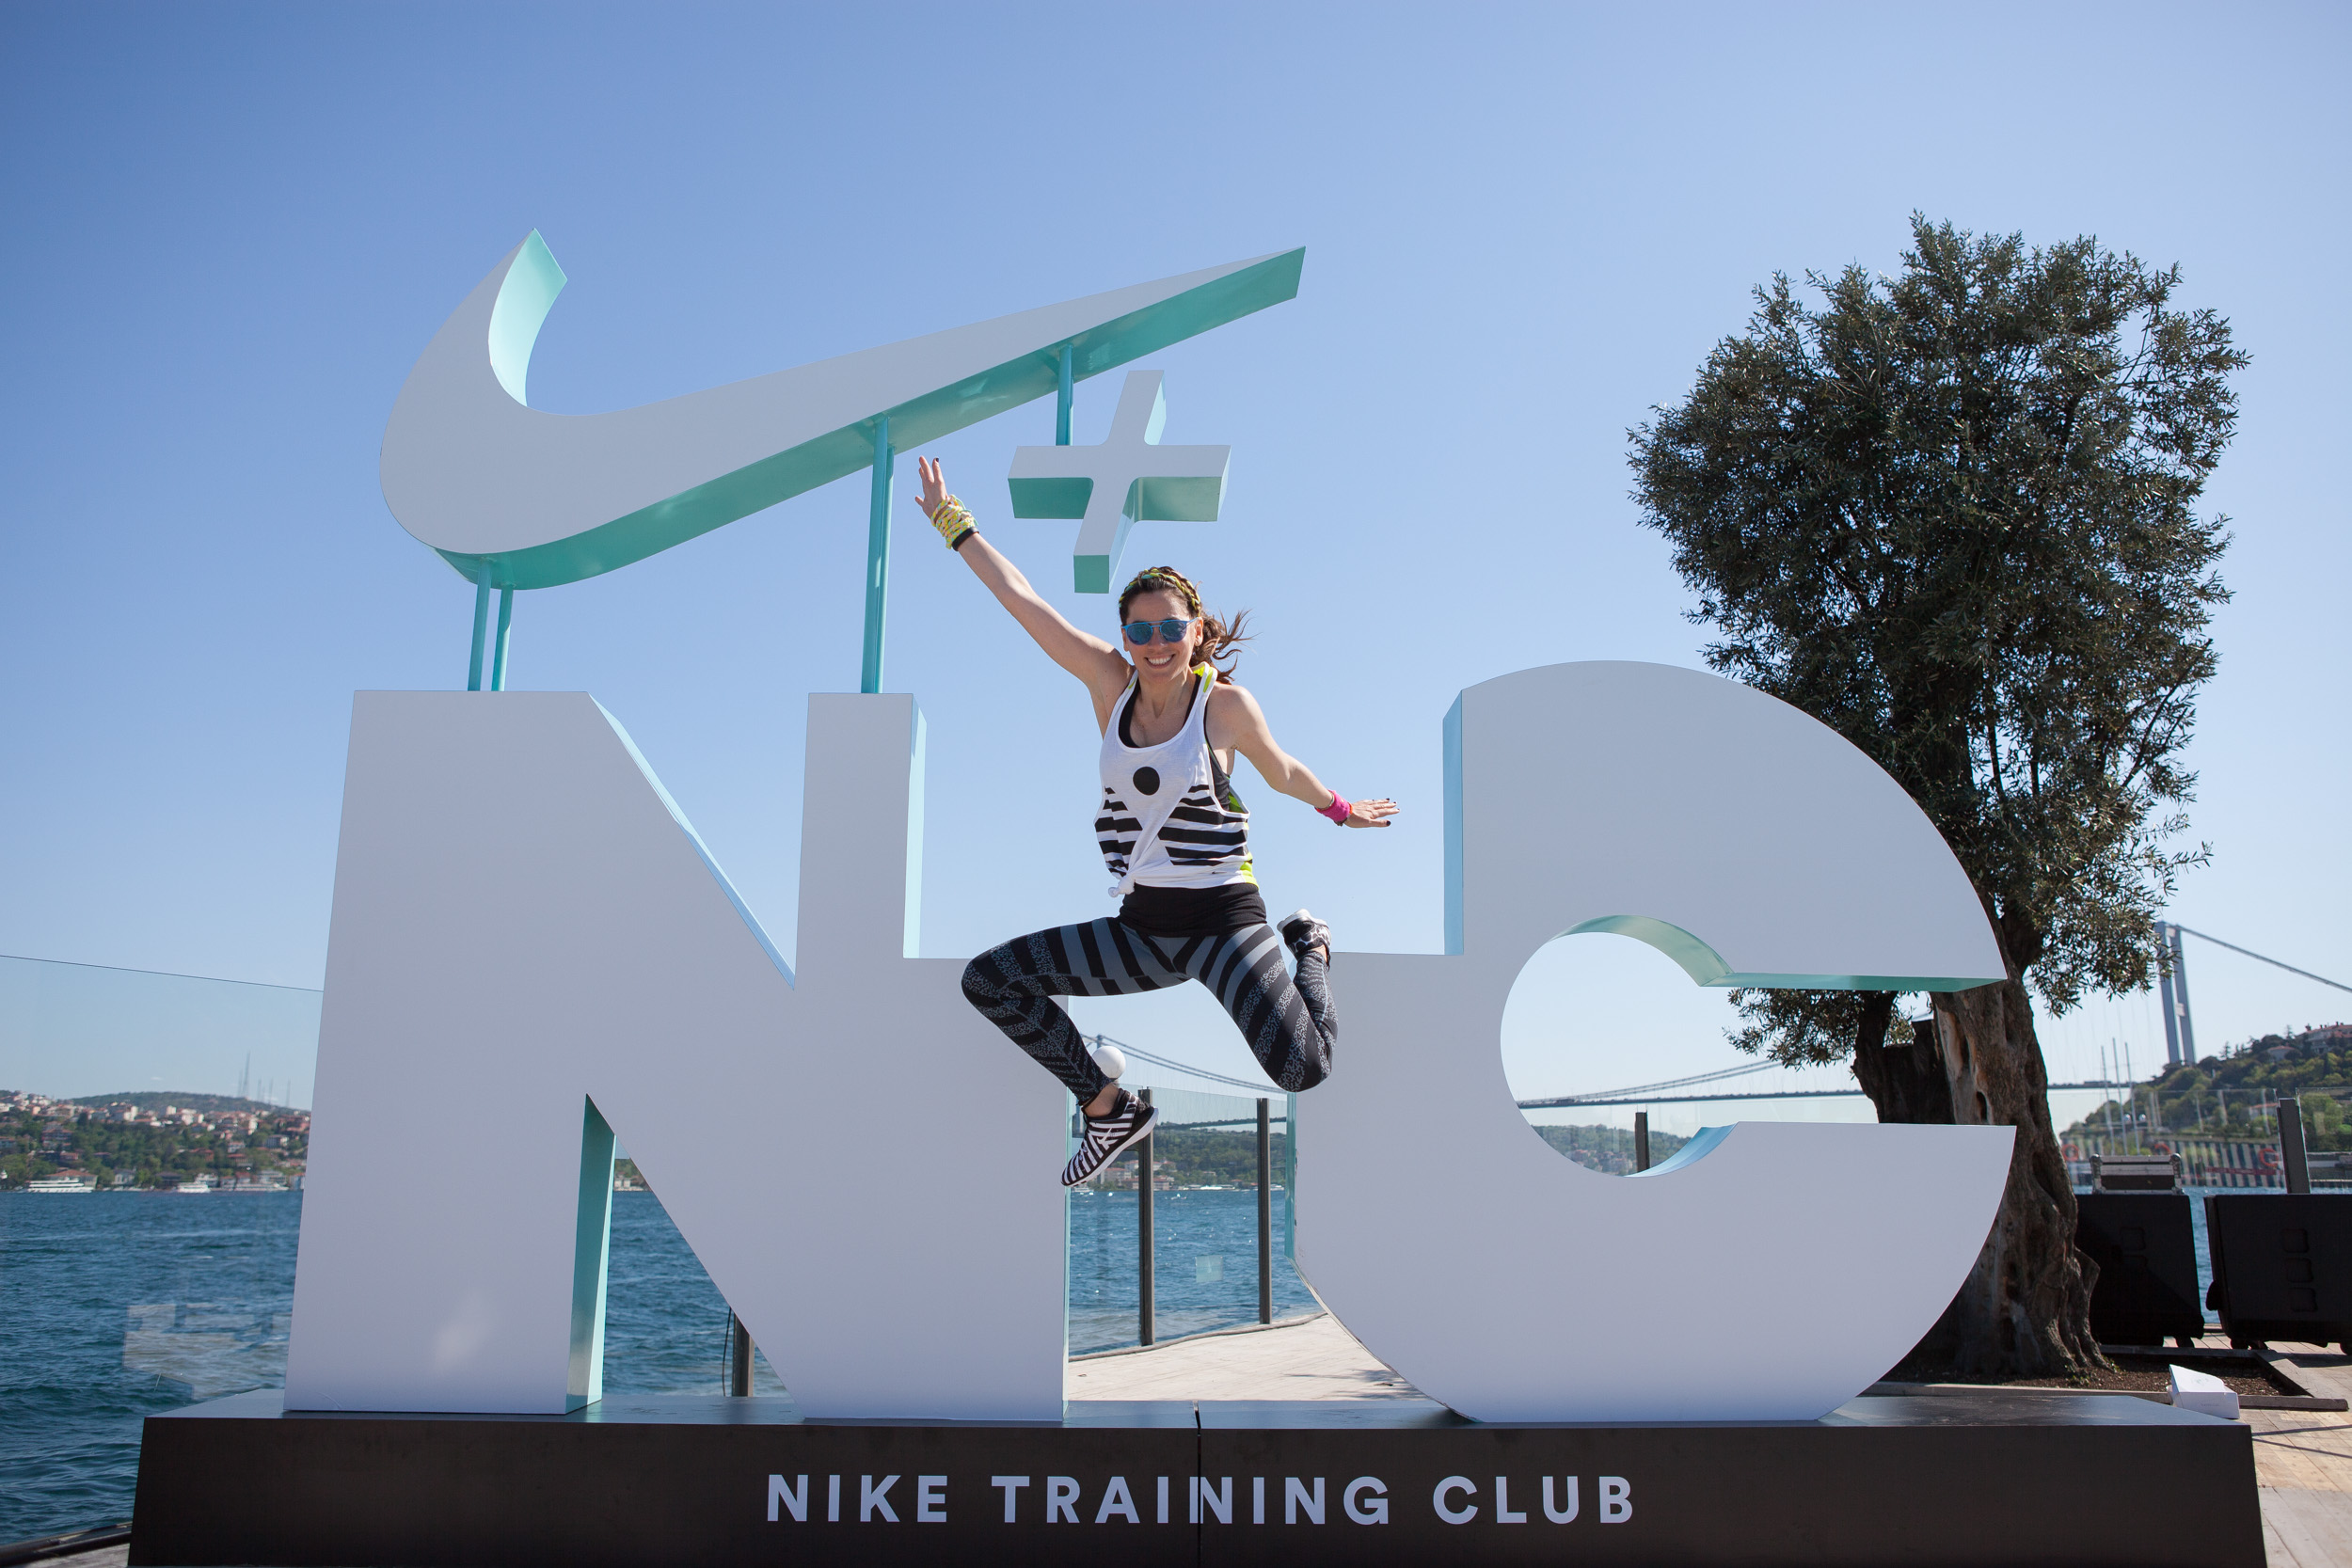 ntc, ntctouristanbul, geçtimkendimi, betterforit, nike women,  nike training club, suada, billursaatci, off ne giysem, blogger, turkish style blogger, healthy life,  training, workout